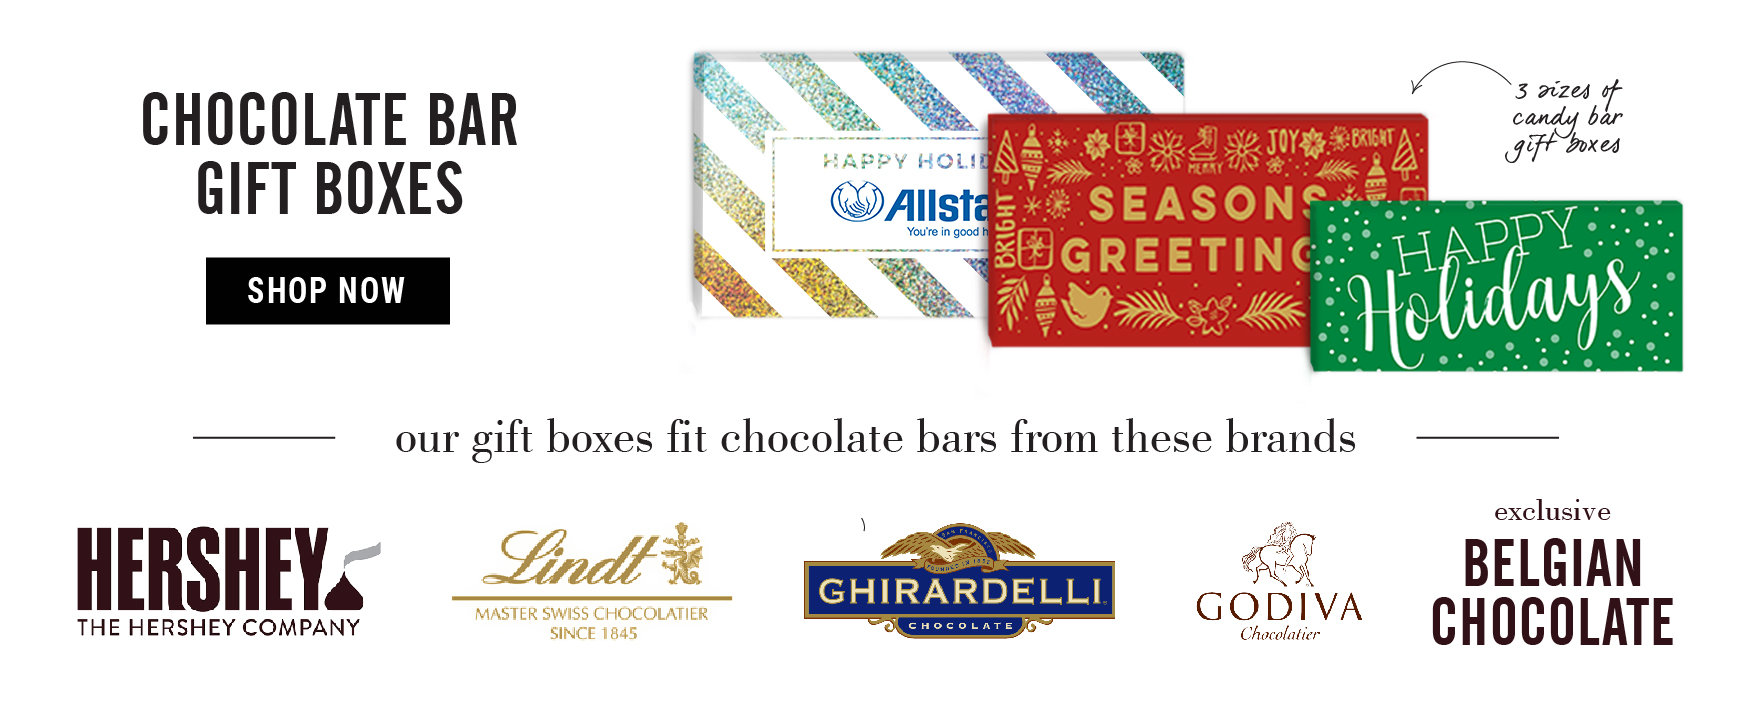 Chocolate Bar Gift Boxes